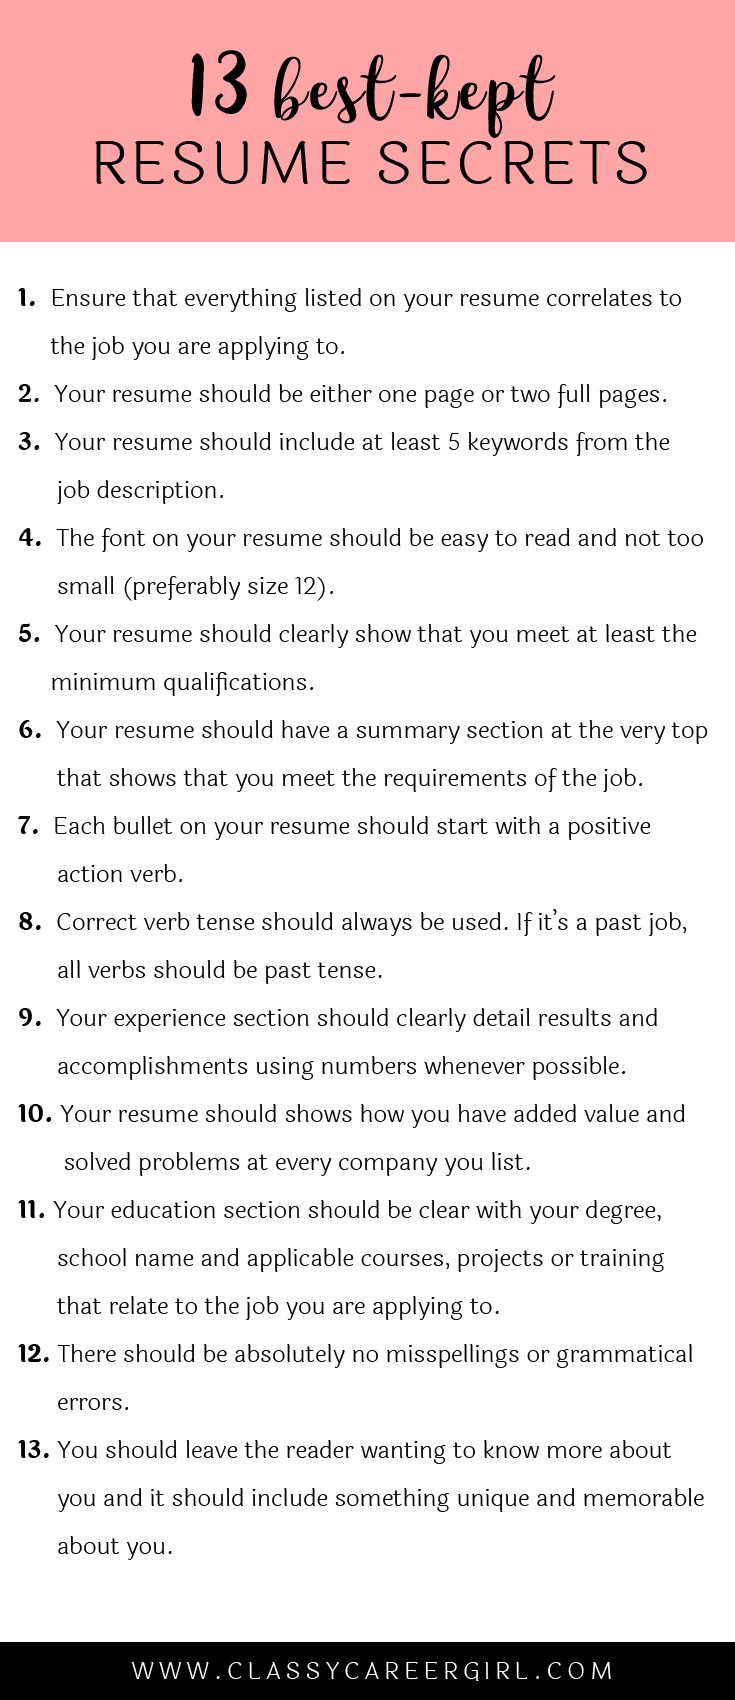 Opposenewapstandardsus  Unique  Ideas About Resume On Pinterest  Cv Format Resume Cv And  With Fair Some Hiring Managers Will Toss Your Resume Out If You Dont Know These  With Comely Store Associate Resume Also Objective Statement For Resumes In Addition Fancy Resumes And Sales Associate Sample Resume As Well As Resume For A Waitress Additionally Pacu Nurse Resume From Pinterestcom With Opposenewapstandardsus  Fair  Ideas About Resume On Pinterest  Cv Format Resume Cv And  With Comely Some Hiring Managers Will Toss Your Resume Out If You Dont Know These  And Unique Store Associate Resume Also Objective Statement For Resumes In Addition Fancy Resumes From Pinterestcom